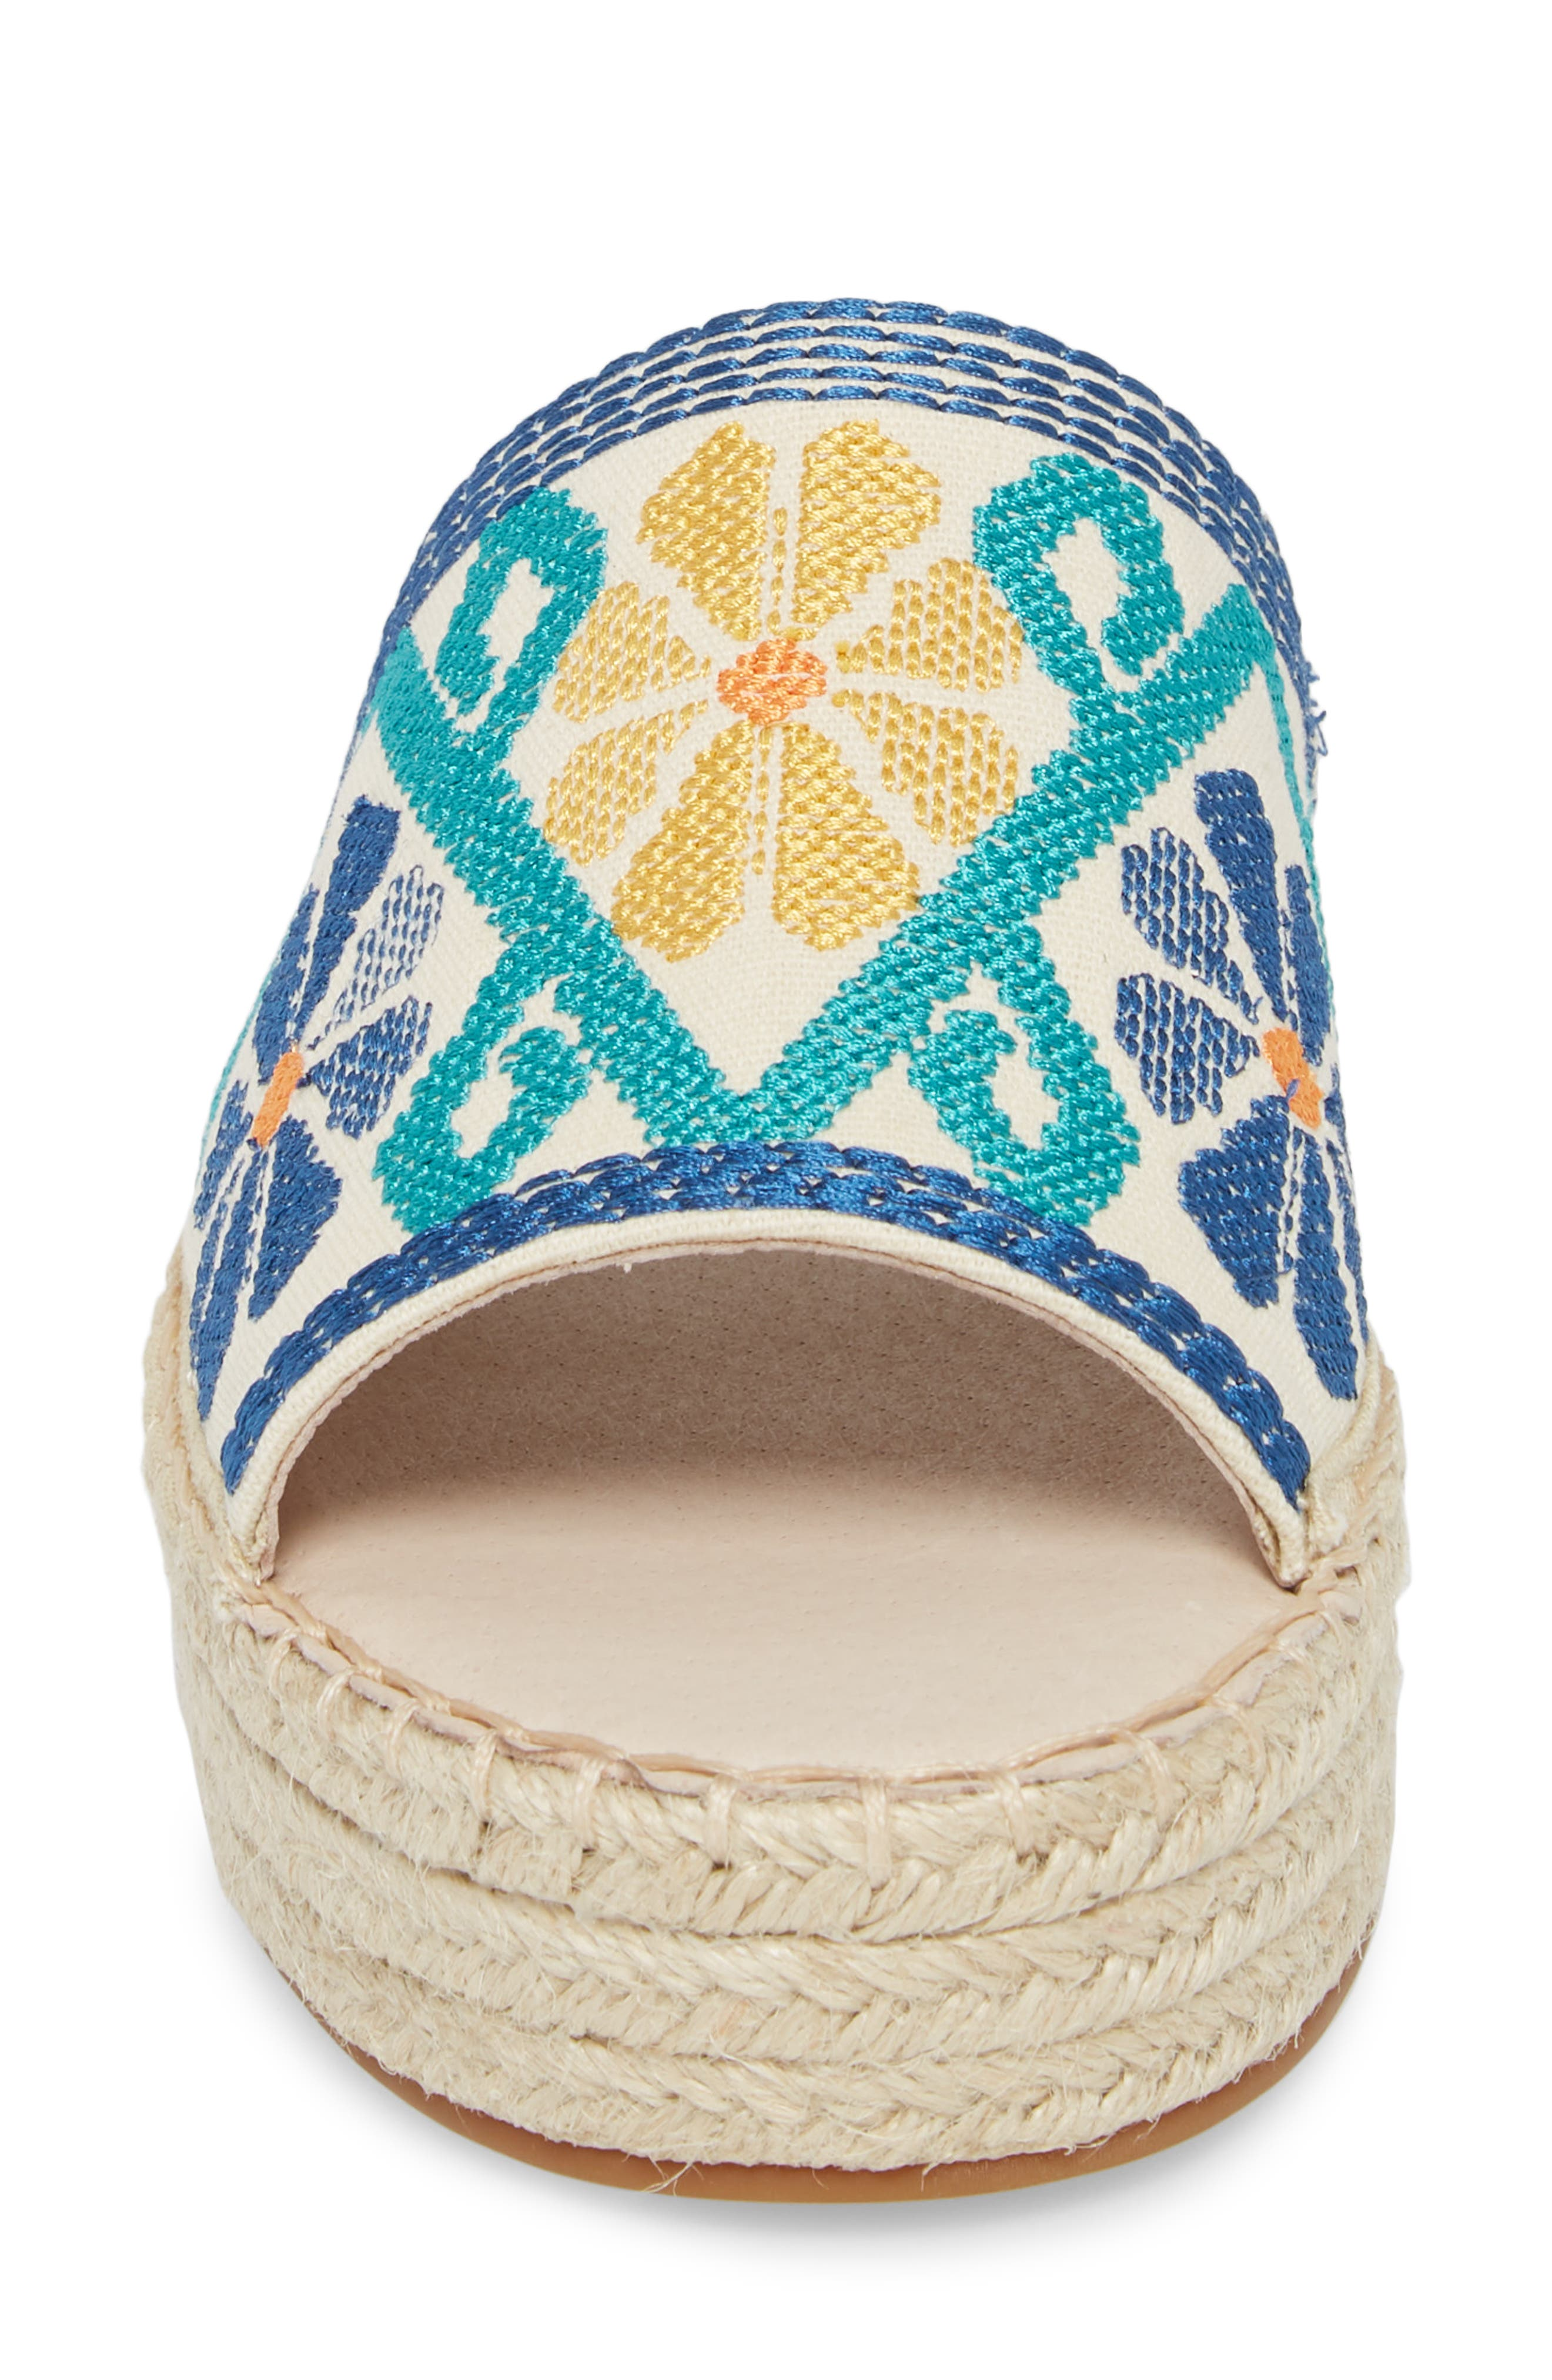 Cammy Platform Slide Sandal,                             Alternate thumbnail 4, color,                             Natural Embroidery Fabric